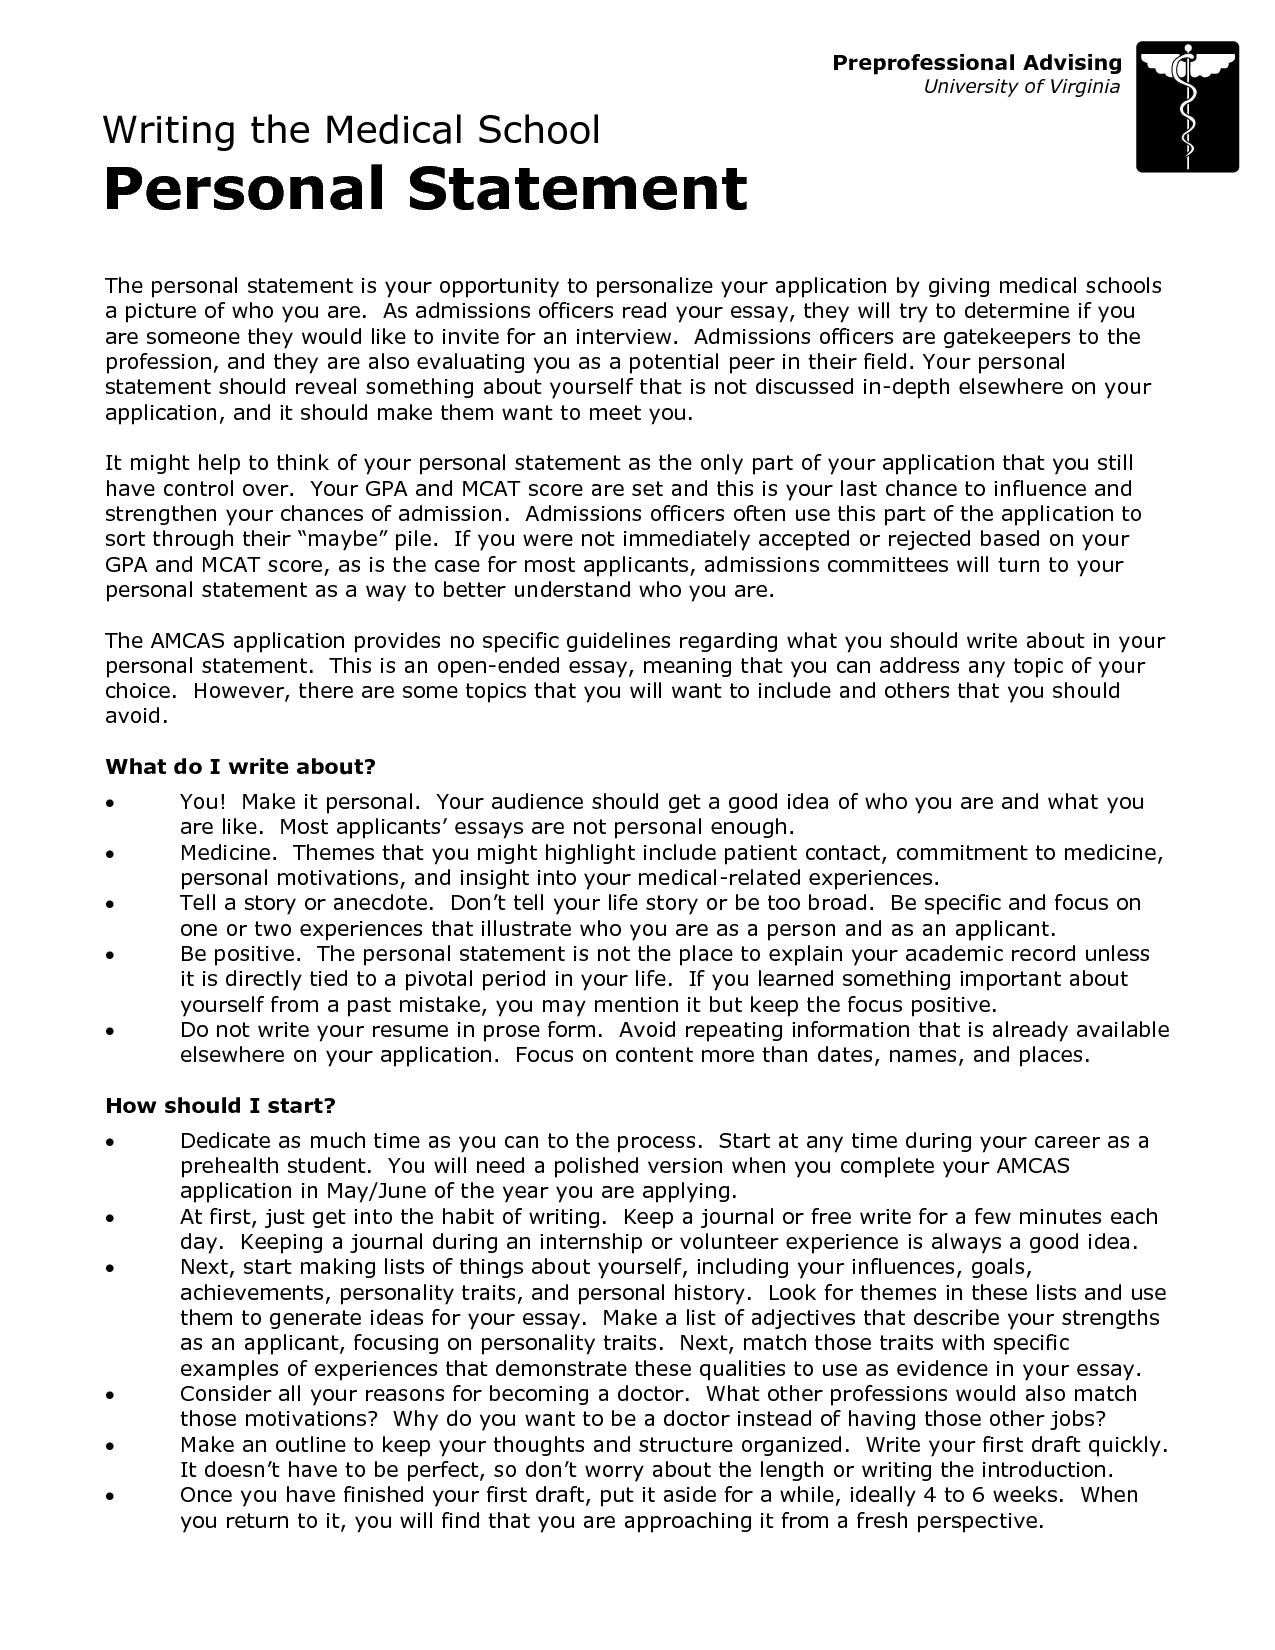 personal statement for msa essay We will write a custom essay sample on personal statement for msa specifically for you for only $1638 $139/page order now after scatted out hundreds of my resume, and joined tens something interview, i got my first official job offer: financial analyst in , a healthcare financial consulting firm.